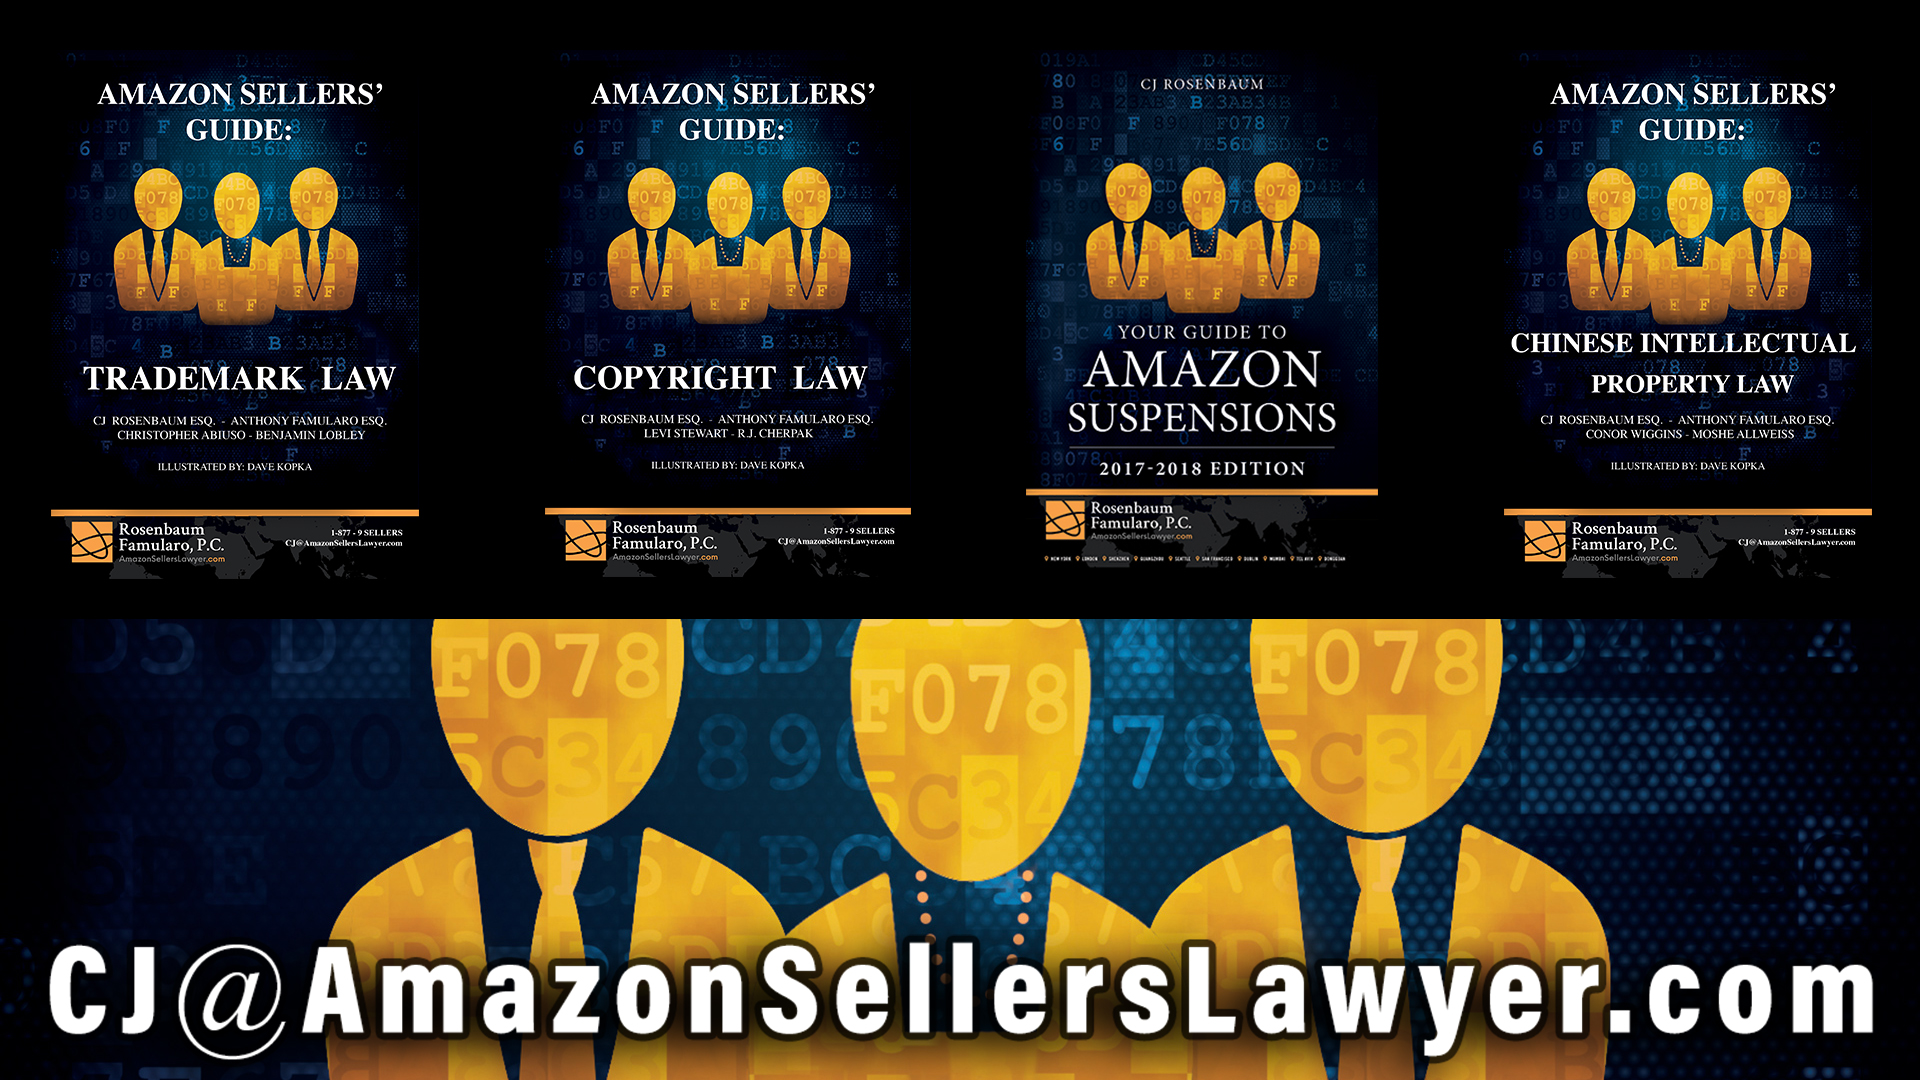 Amazon Sellers' Lawyer Books - Writing Plans of Action